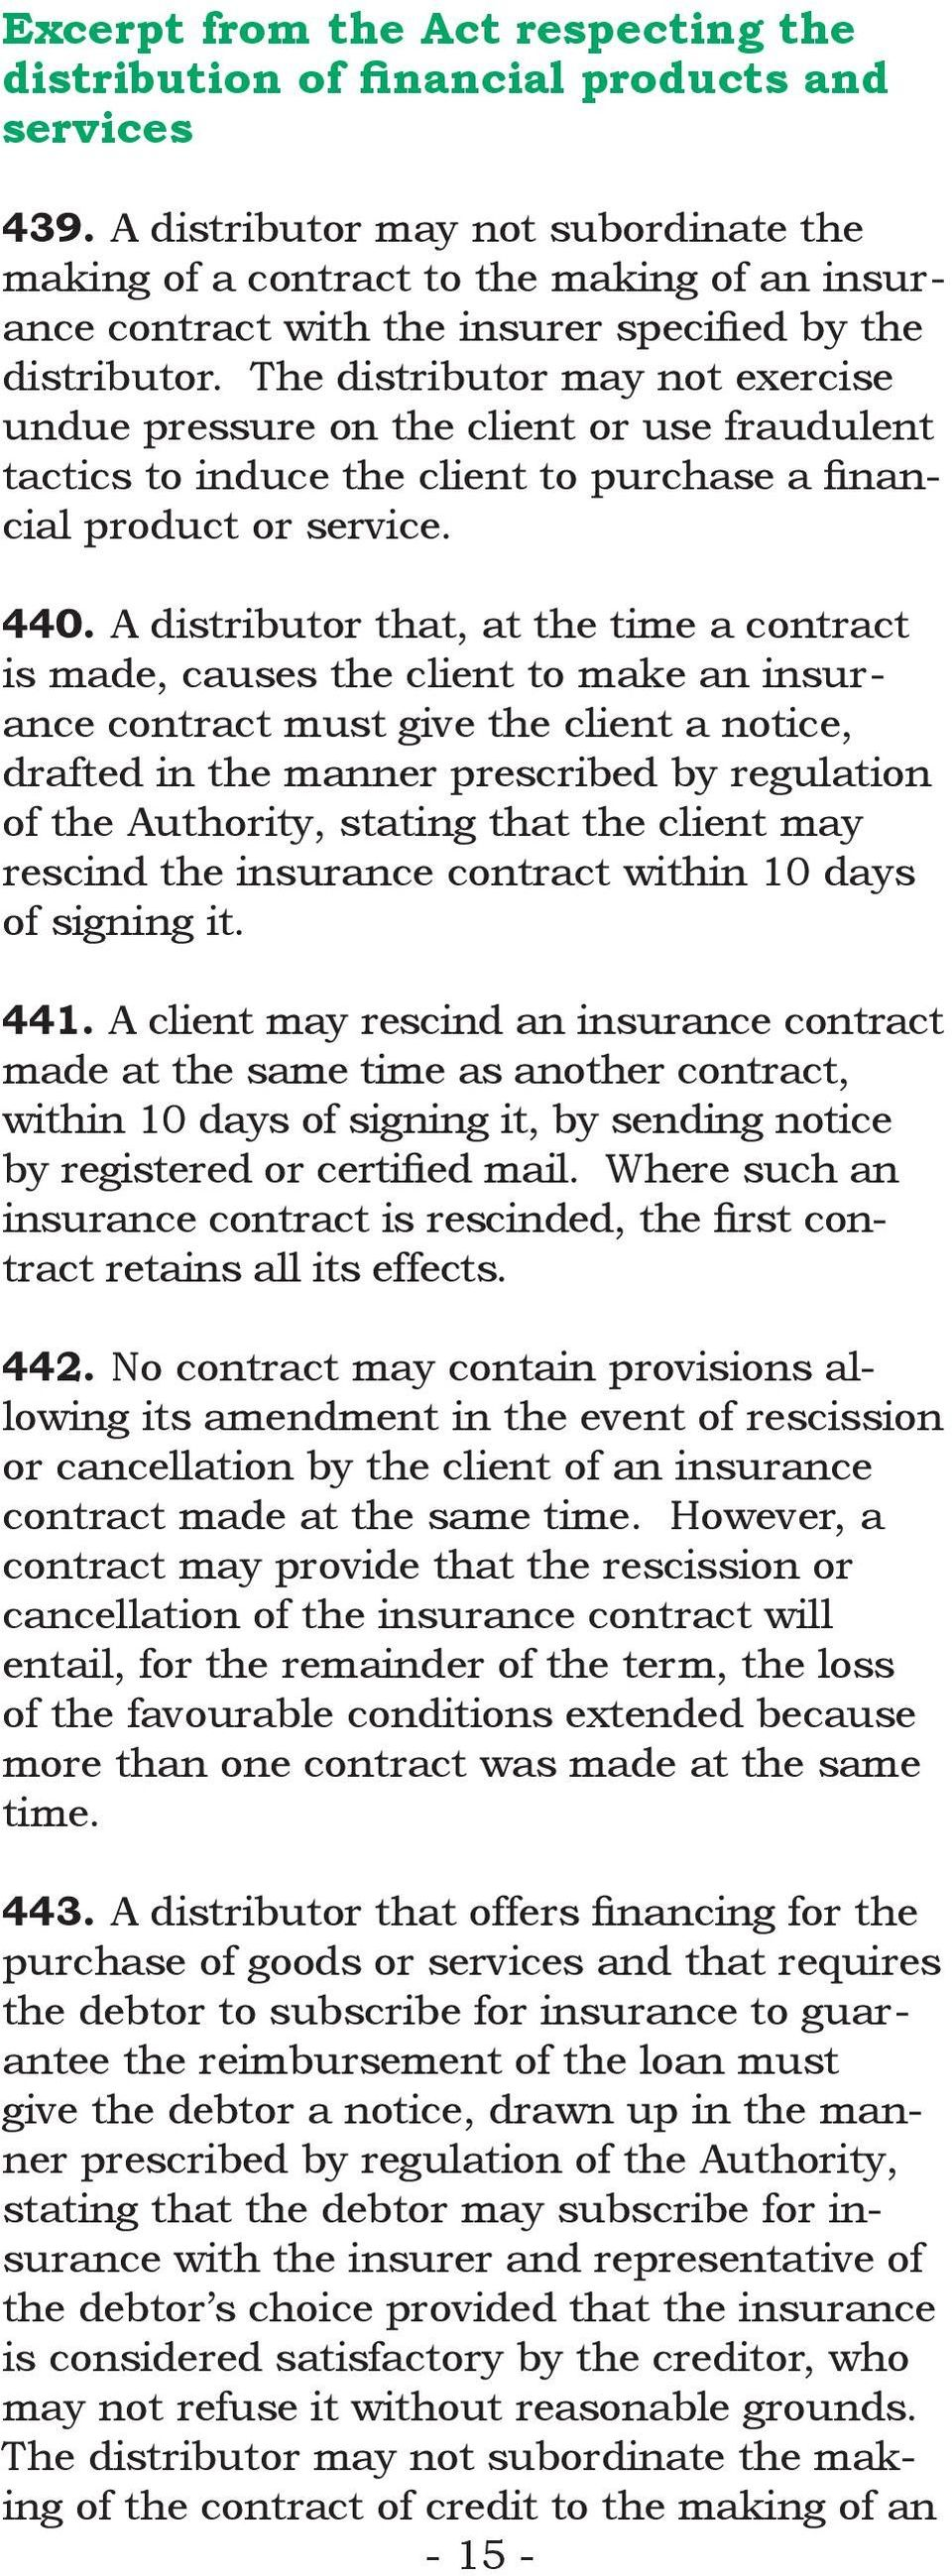 The distributor may not exercise undue pressure on the client or use fraudulent tactics to induce the client to purchase a financial product or service. 440.